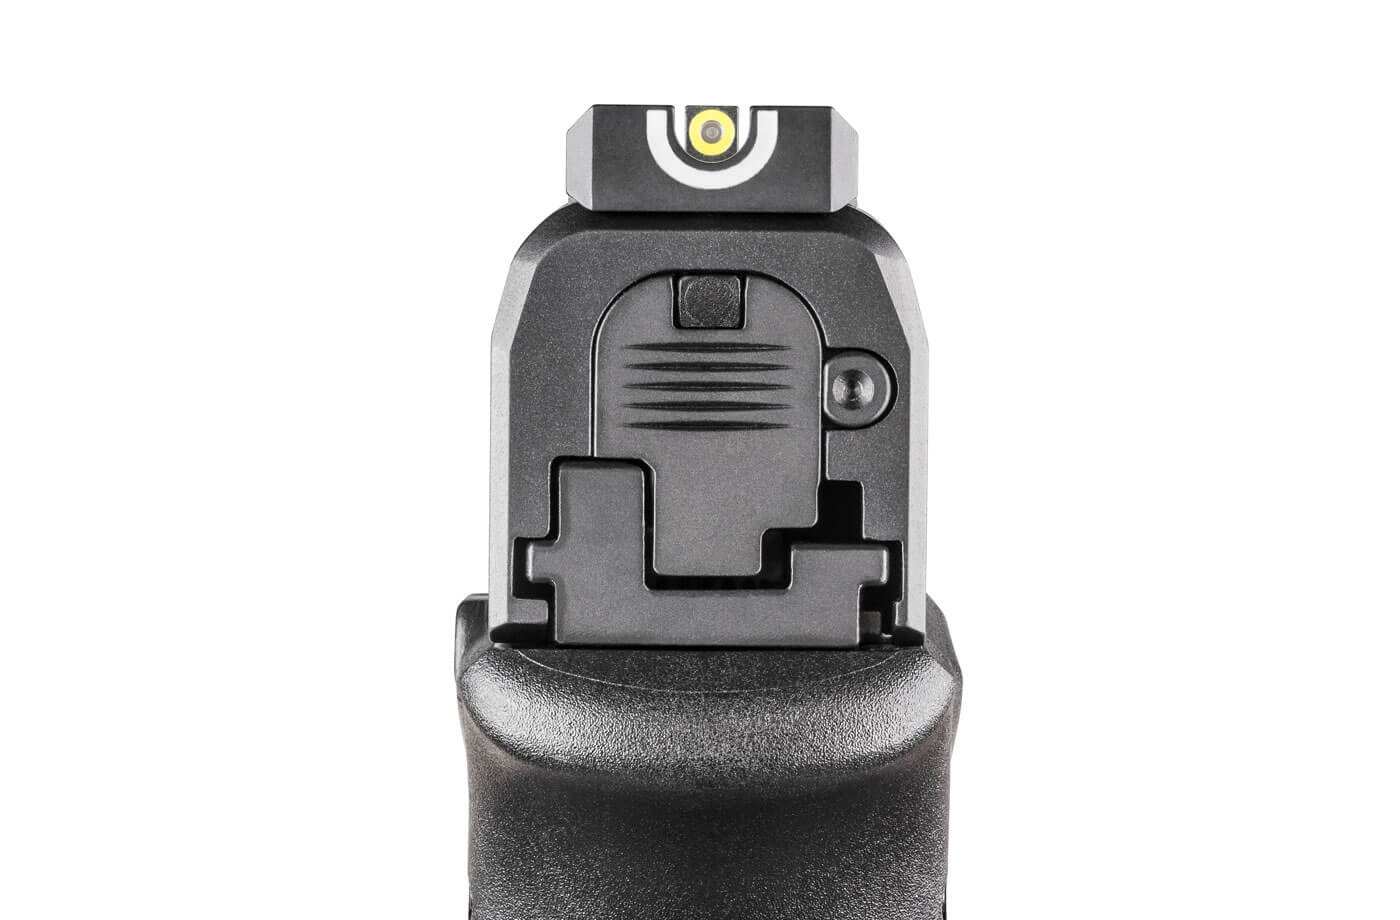 Front sight visible through the u-notch rear sight